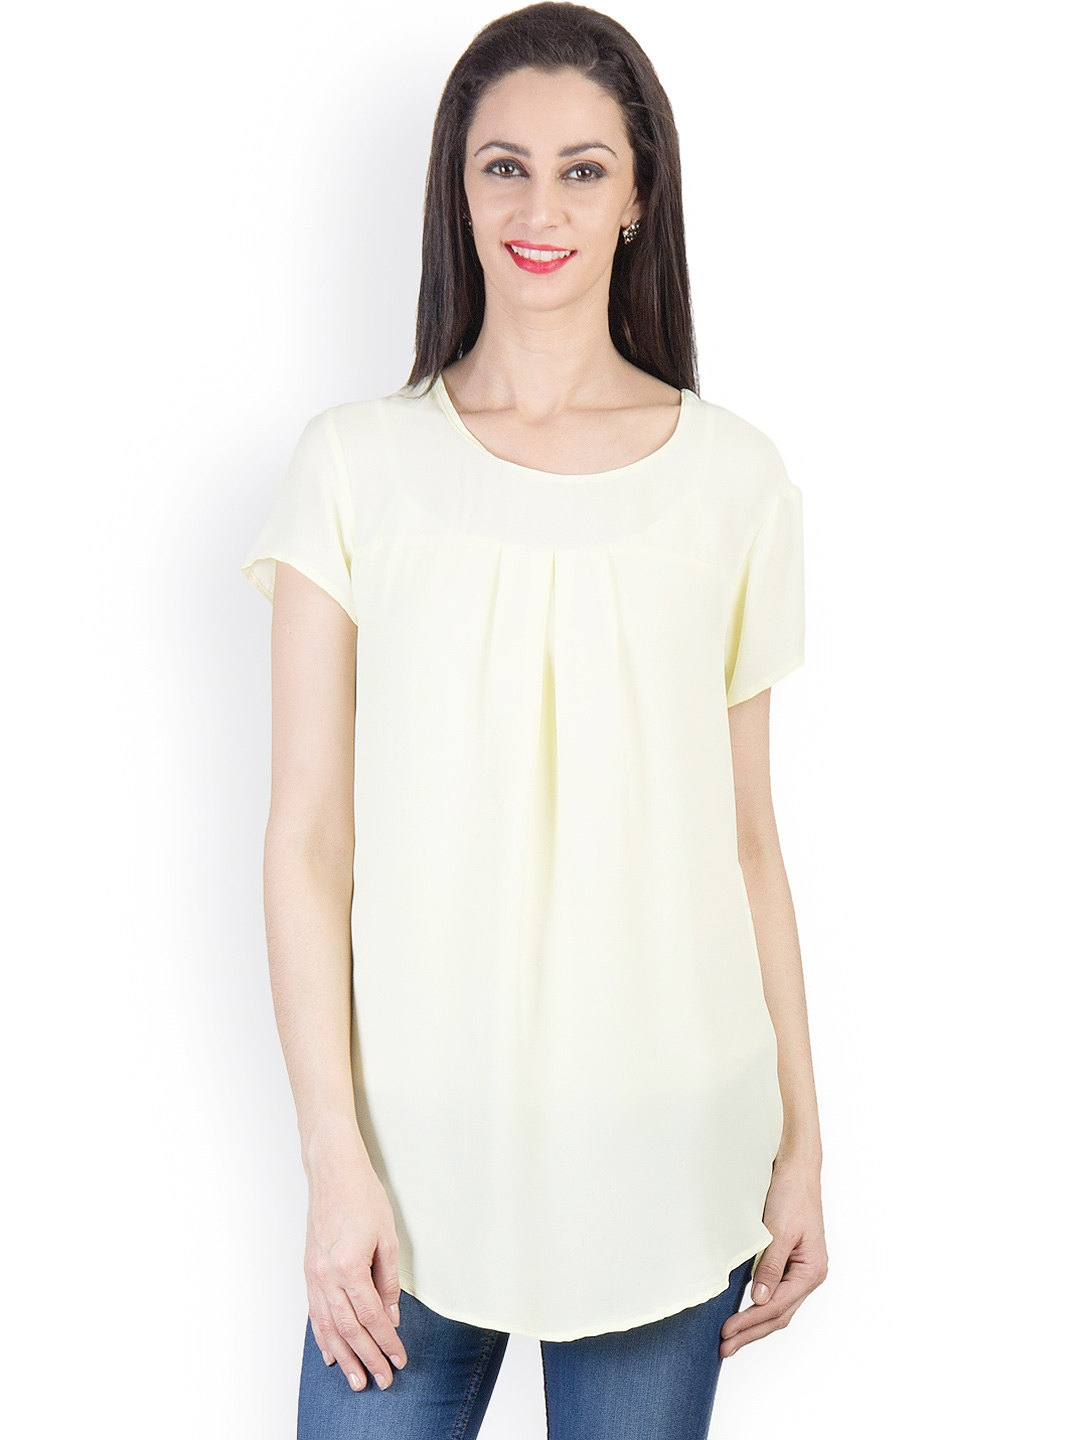 We offer a diverse selection of designer women's tops and women's blouses in various colors and styles. Every piece features a signature cut and is made from high-quality fabrics. This season's women's tops online feature floral motifs, Off Shoulder, embroidery trends,Ruffles and Frills.